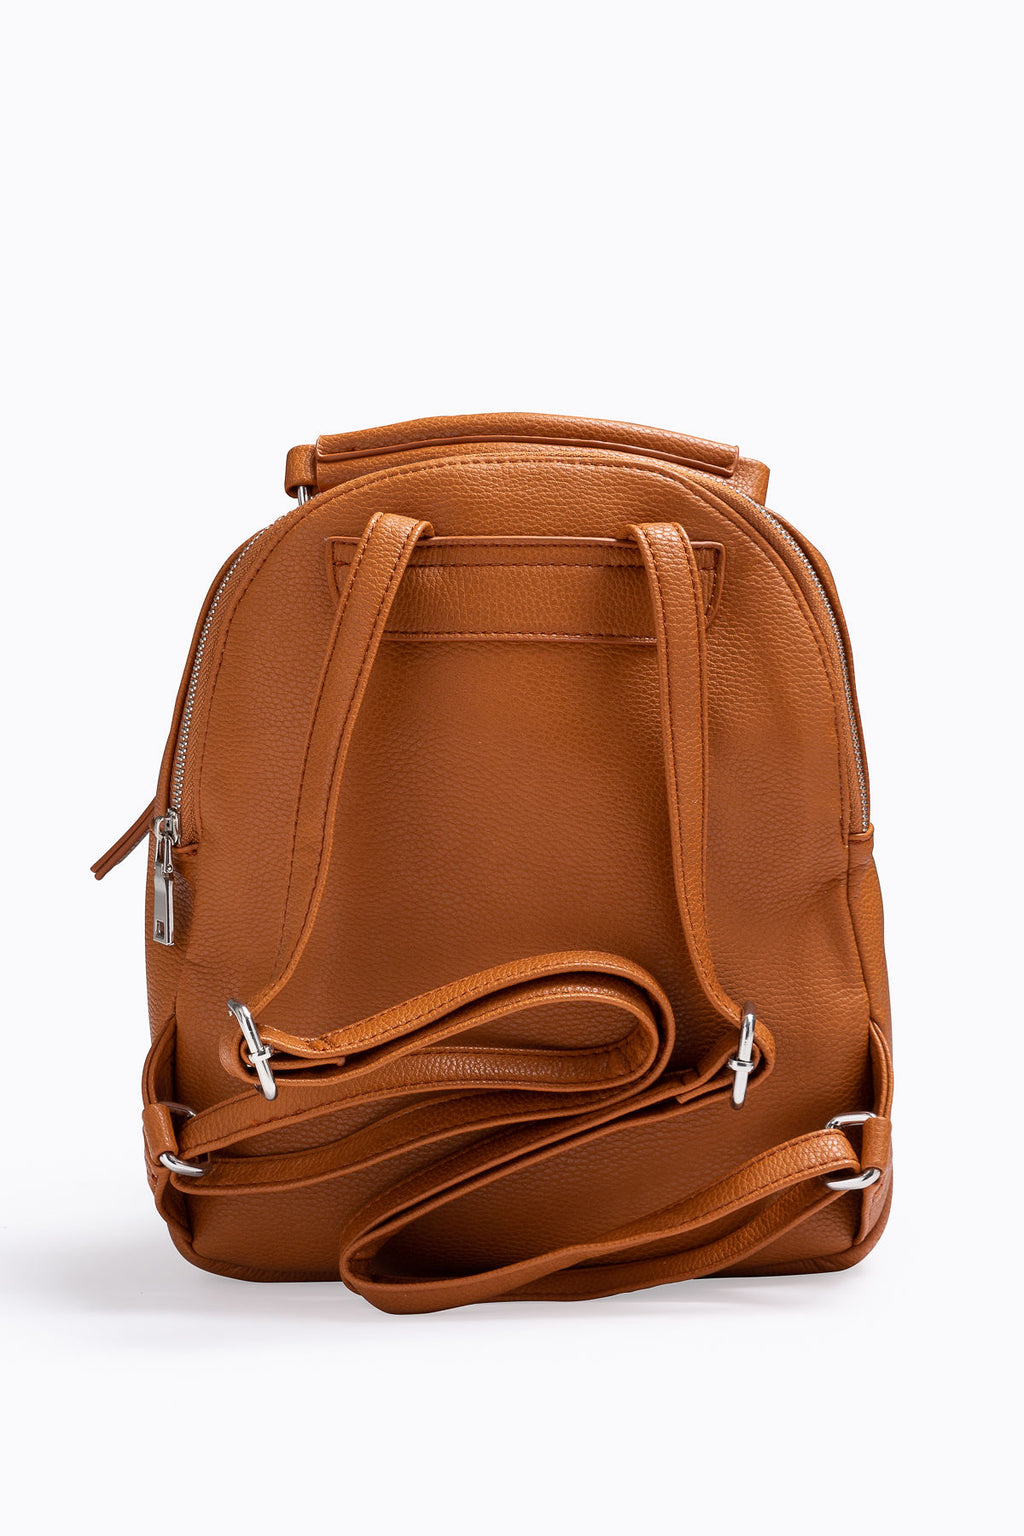 The Harper Convertible Backpack in Tan